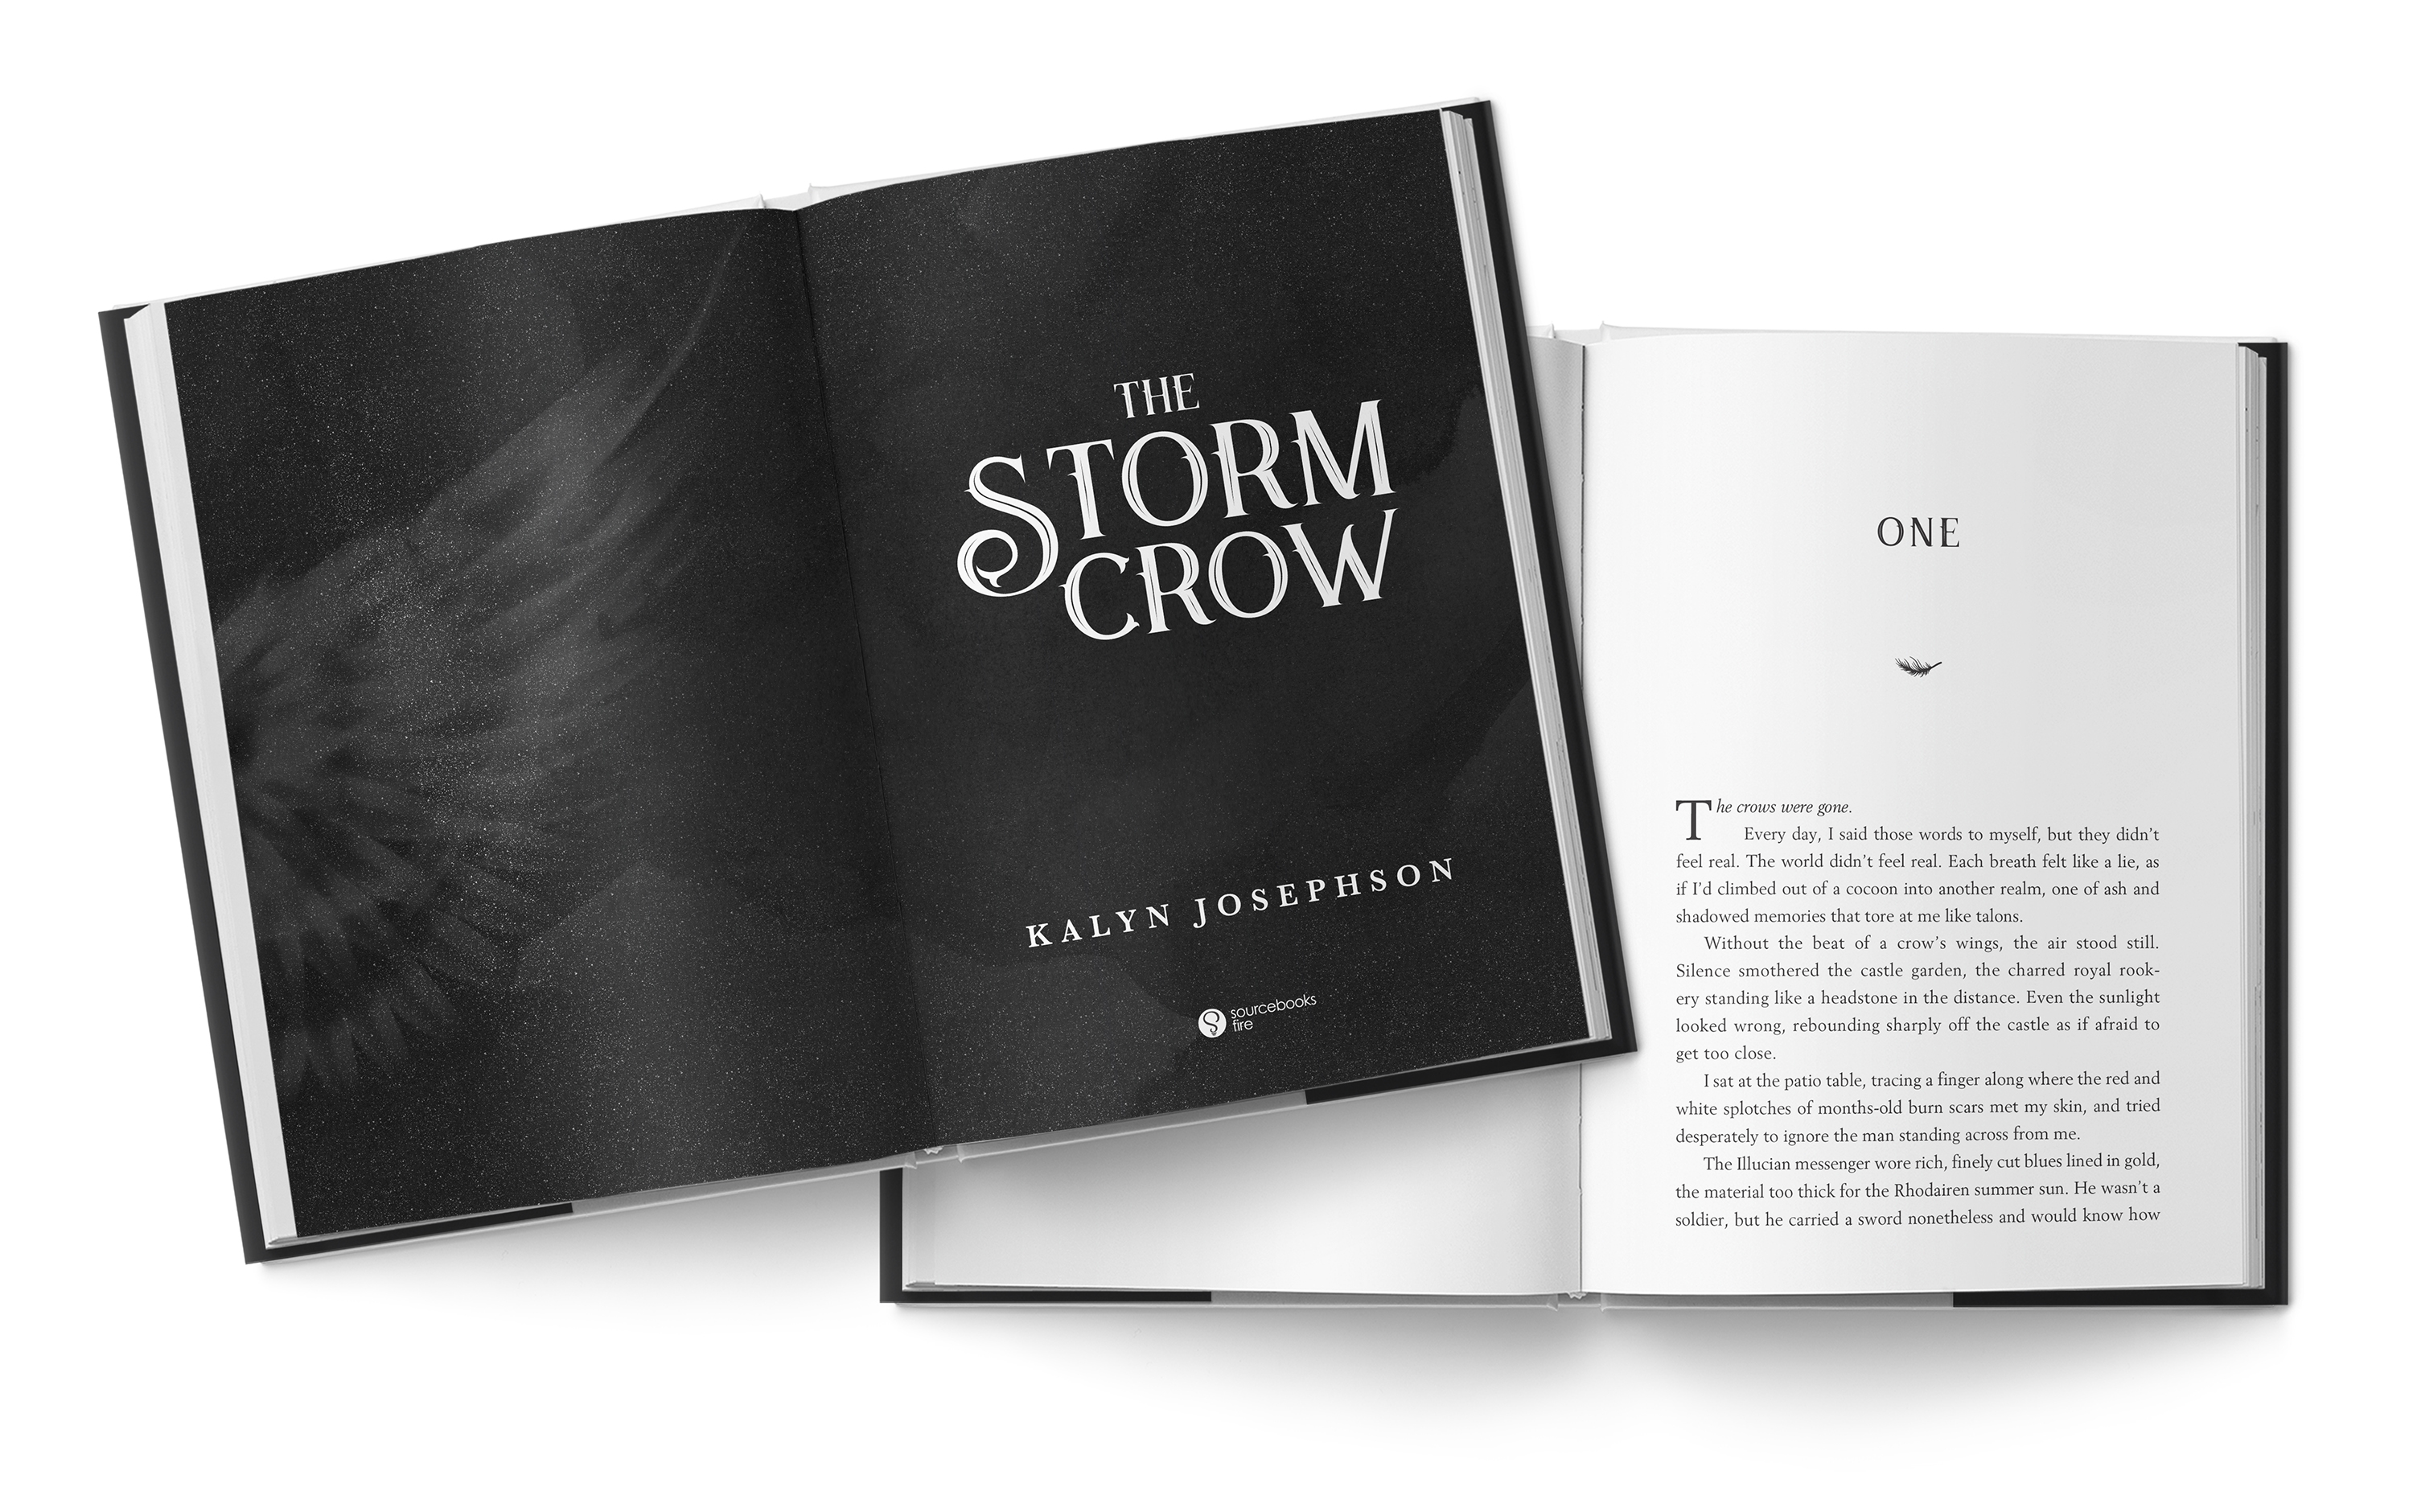 The Storm Crow, Kalyn Josephson